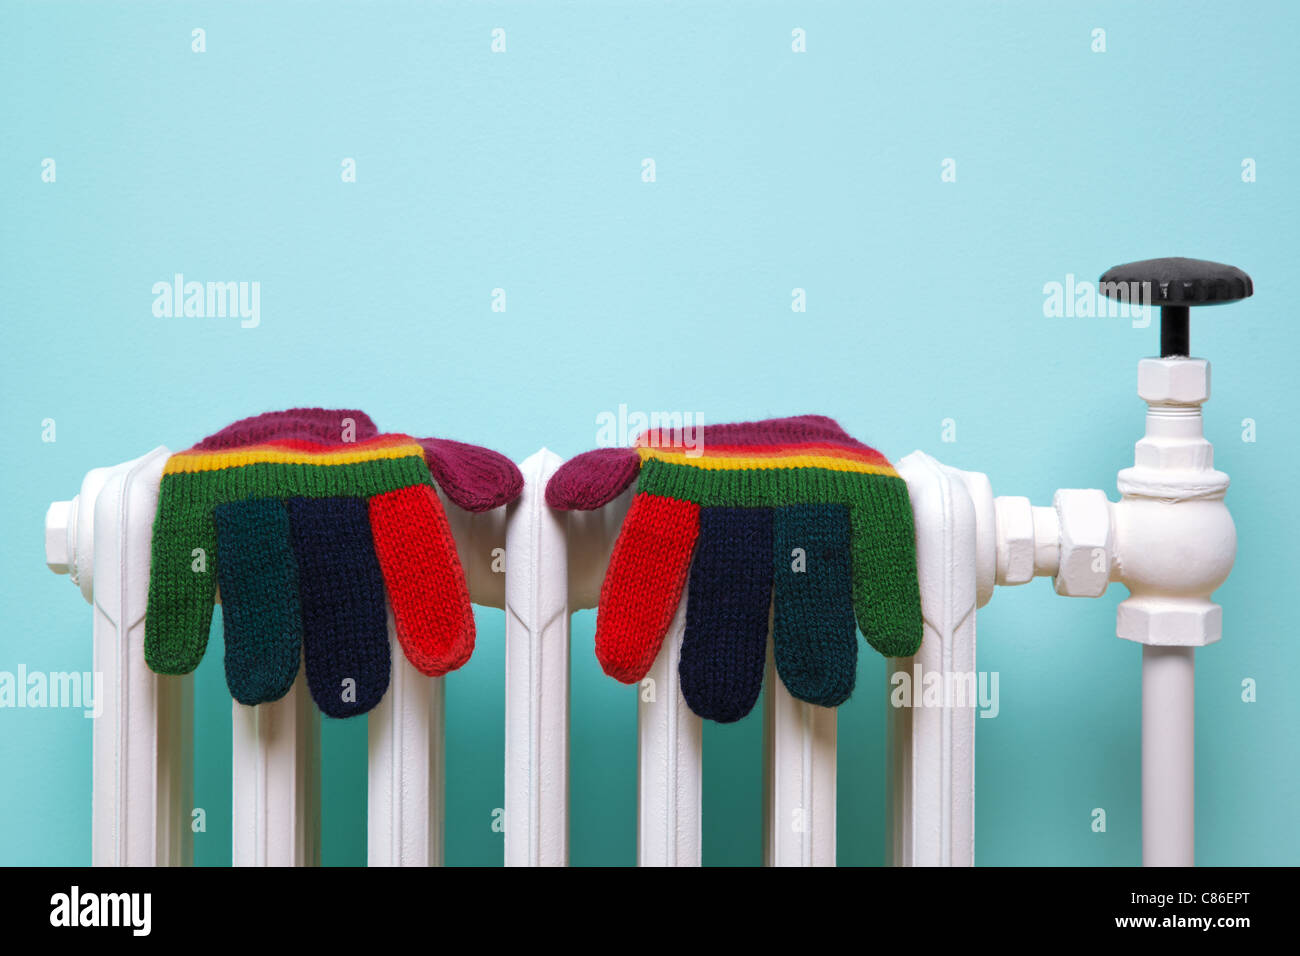 Photo of a pair of hand knitted striped woolen gloves drying on an old traditional cast iron radiator. - Stock Image